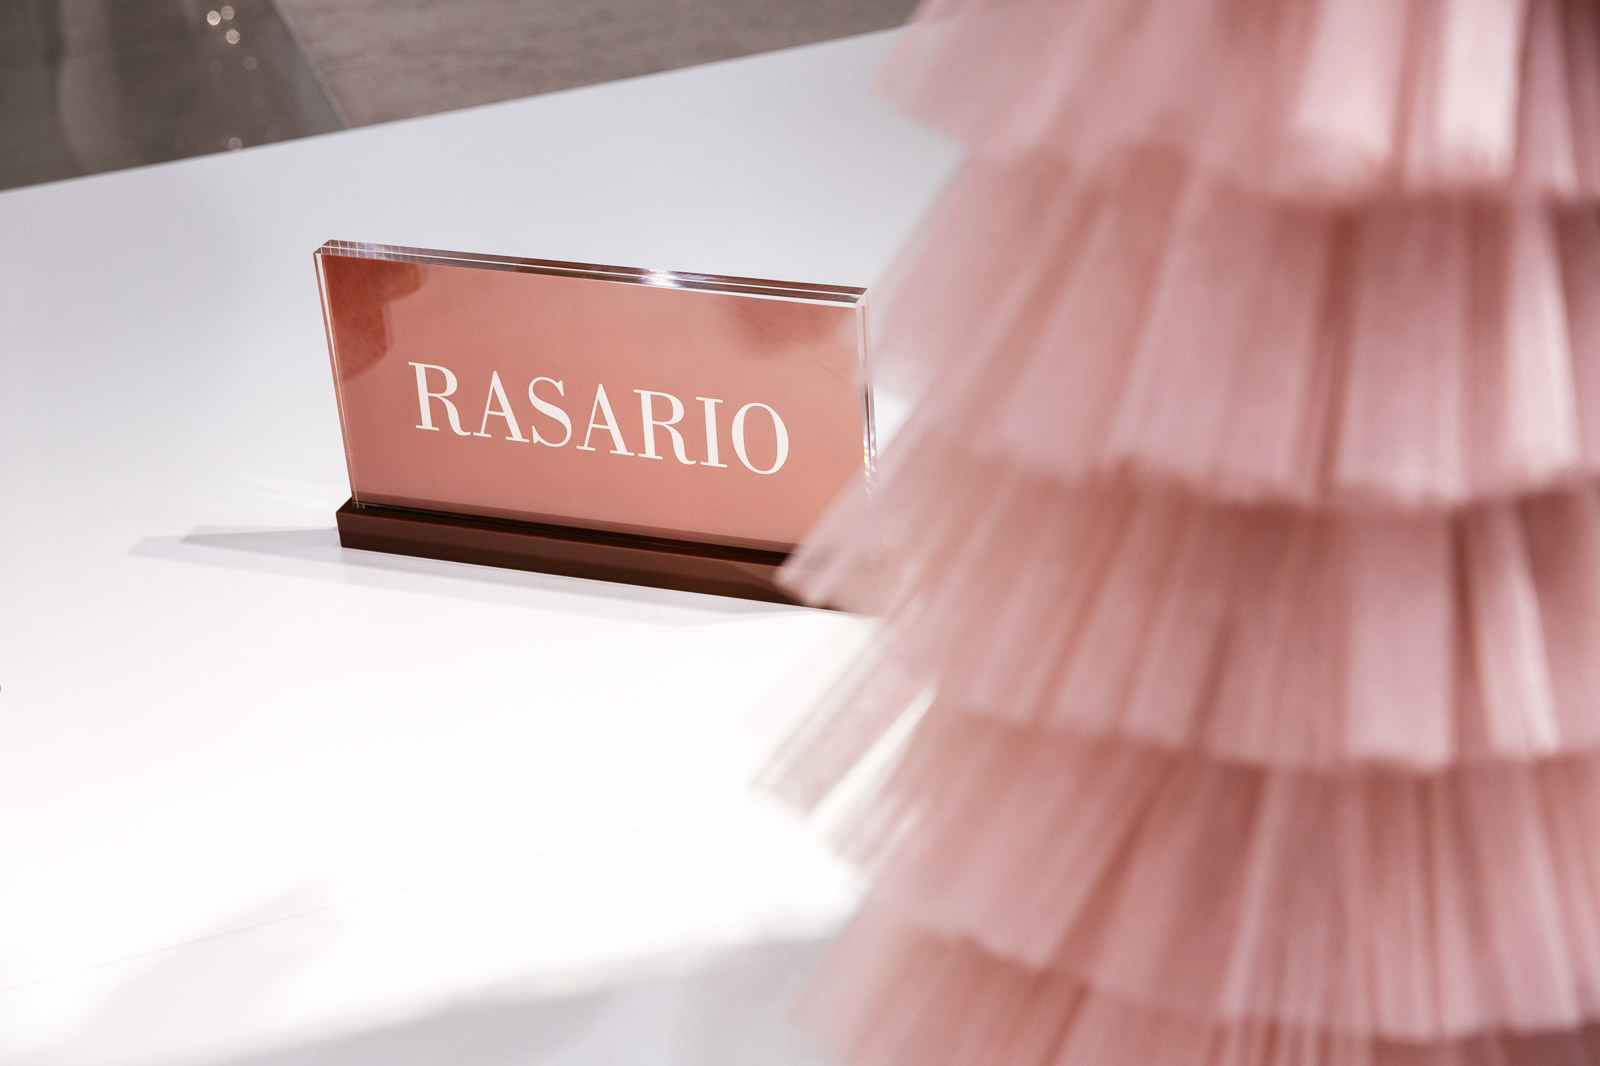 Smolensky Passage hosted the show of RASARIO brand within BOSCO DI ...